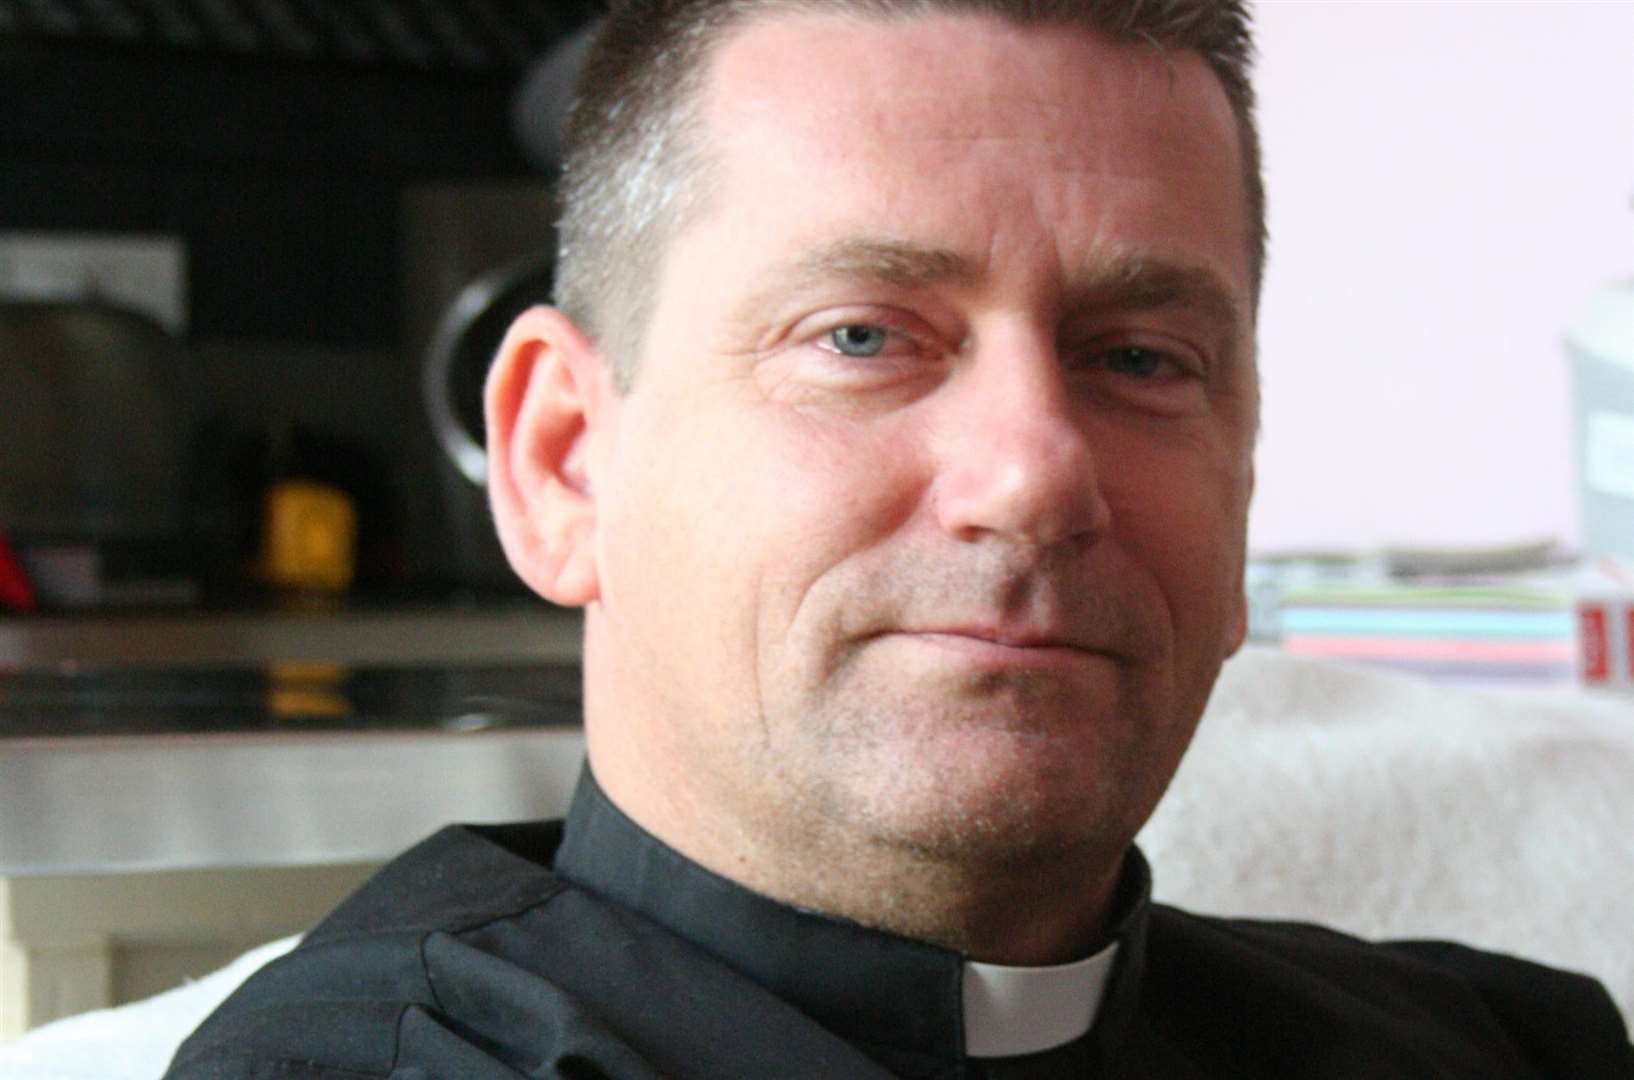 Father John Taylor from Margate